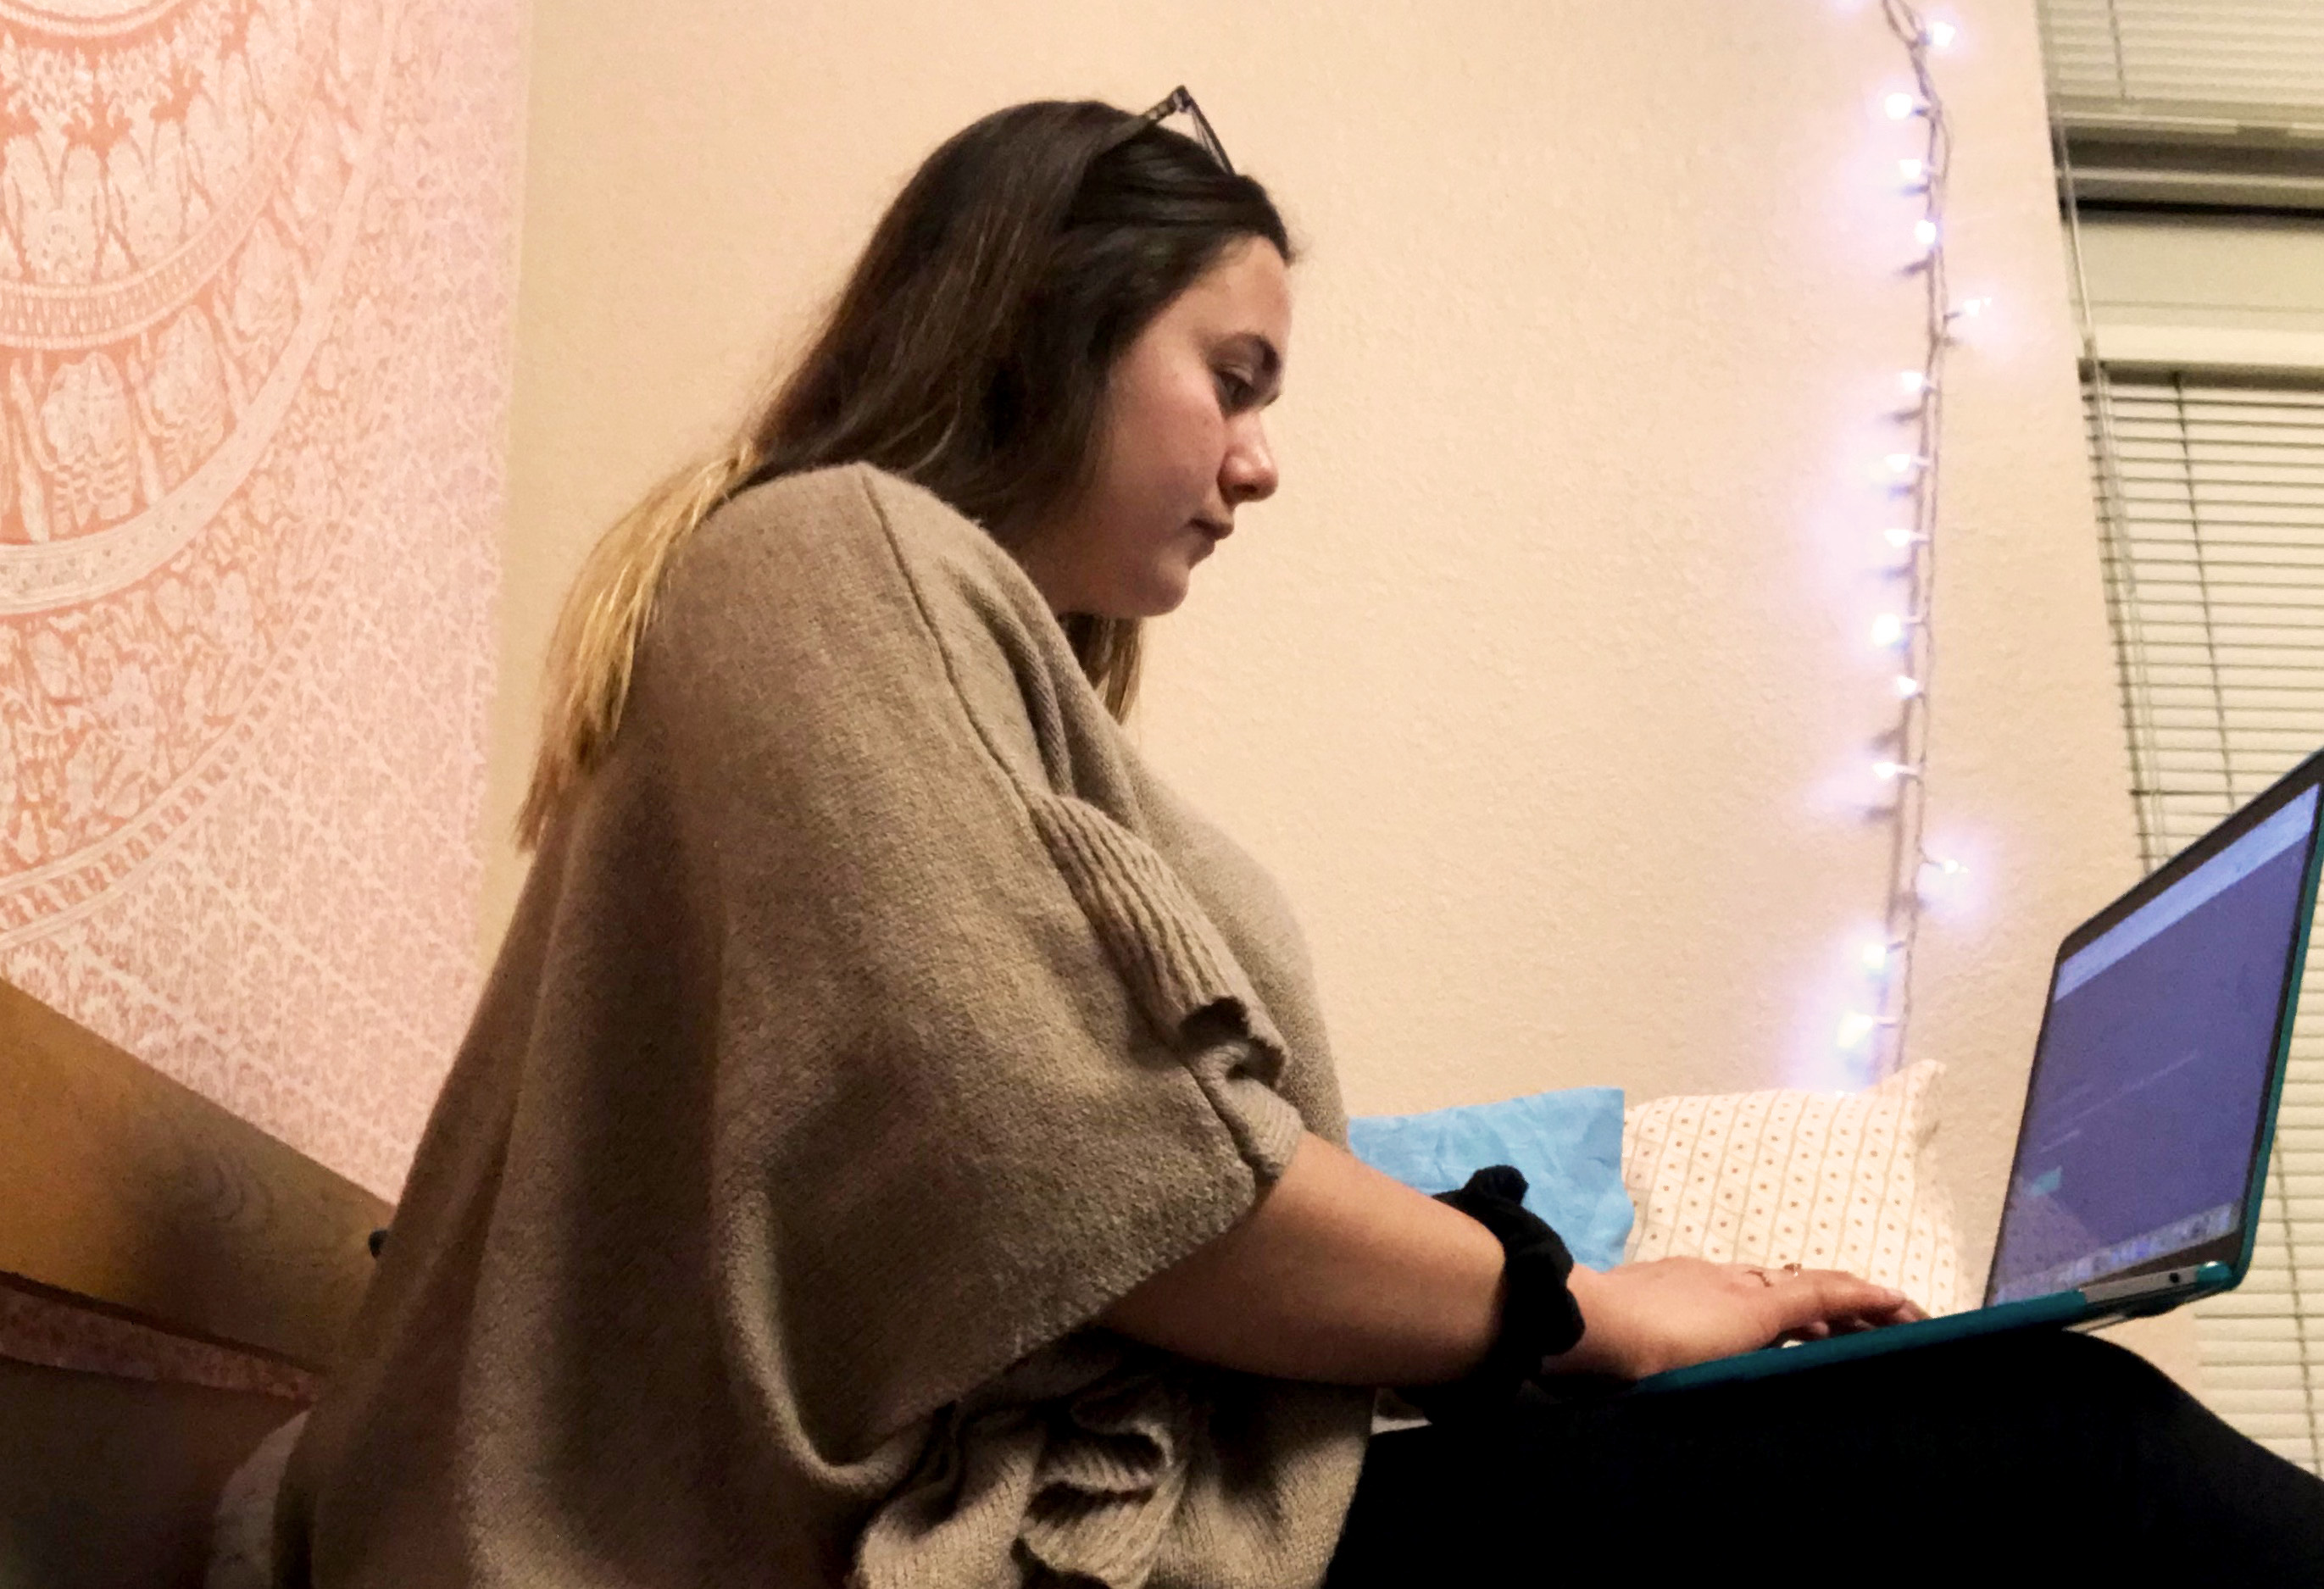 Riley Cummings in her residence hall working on her online course